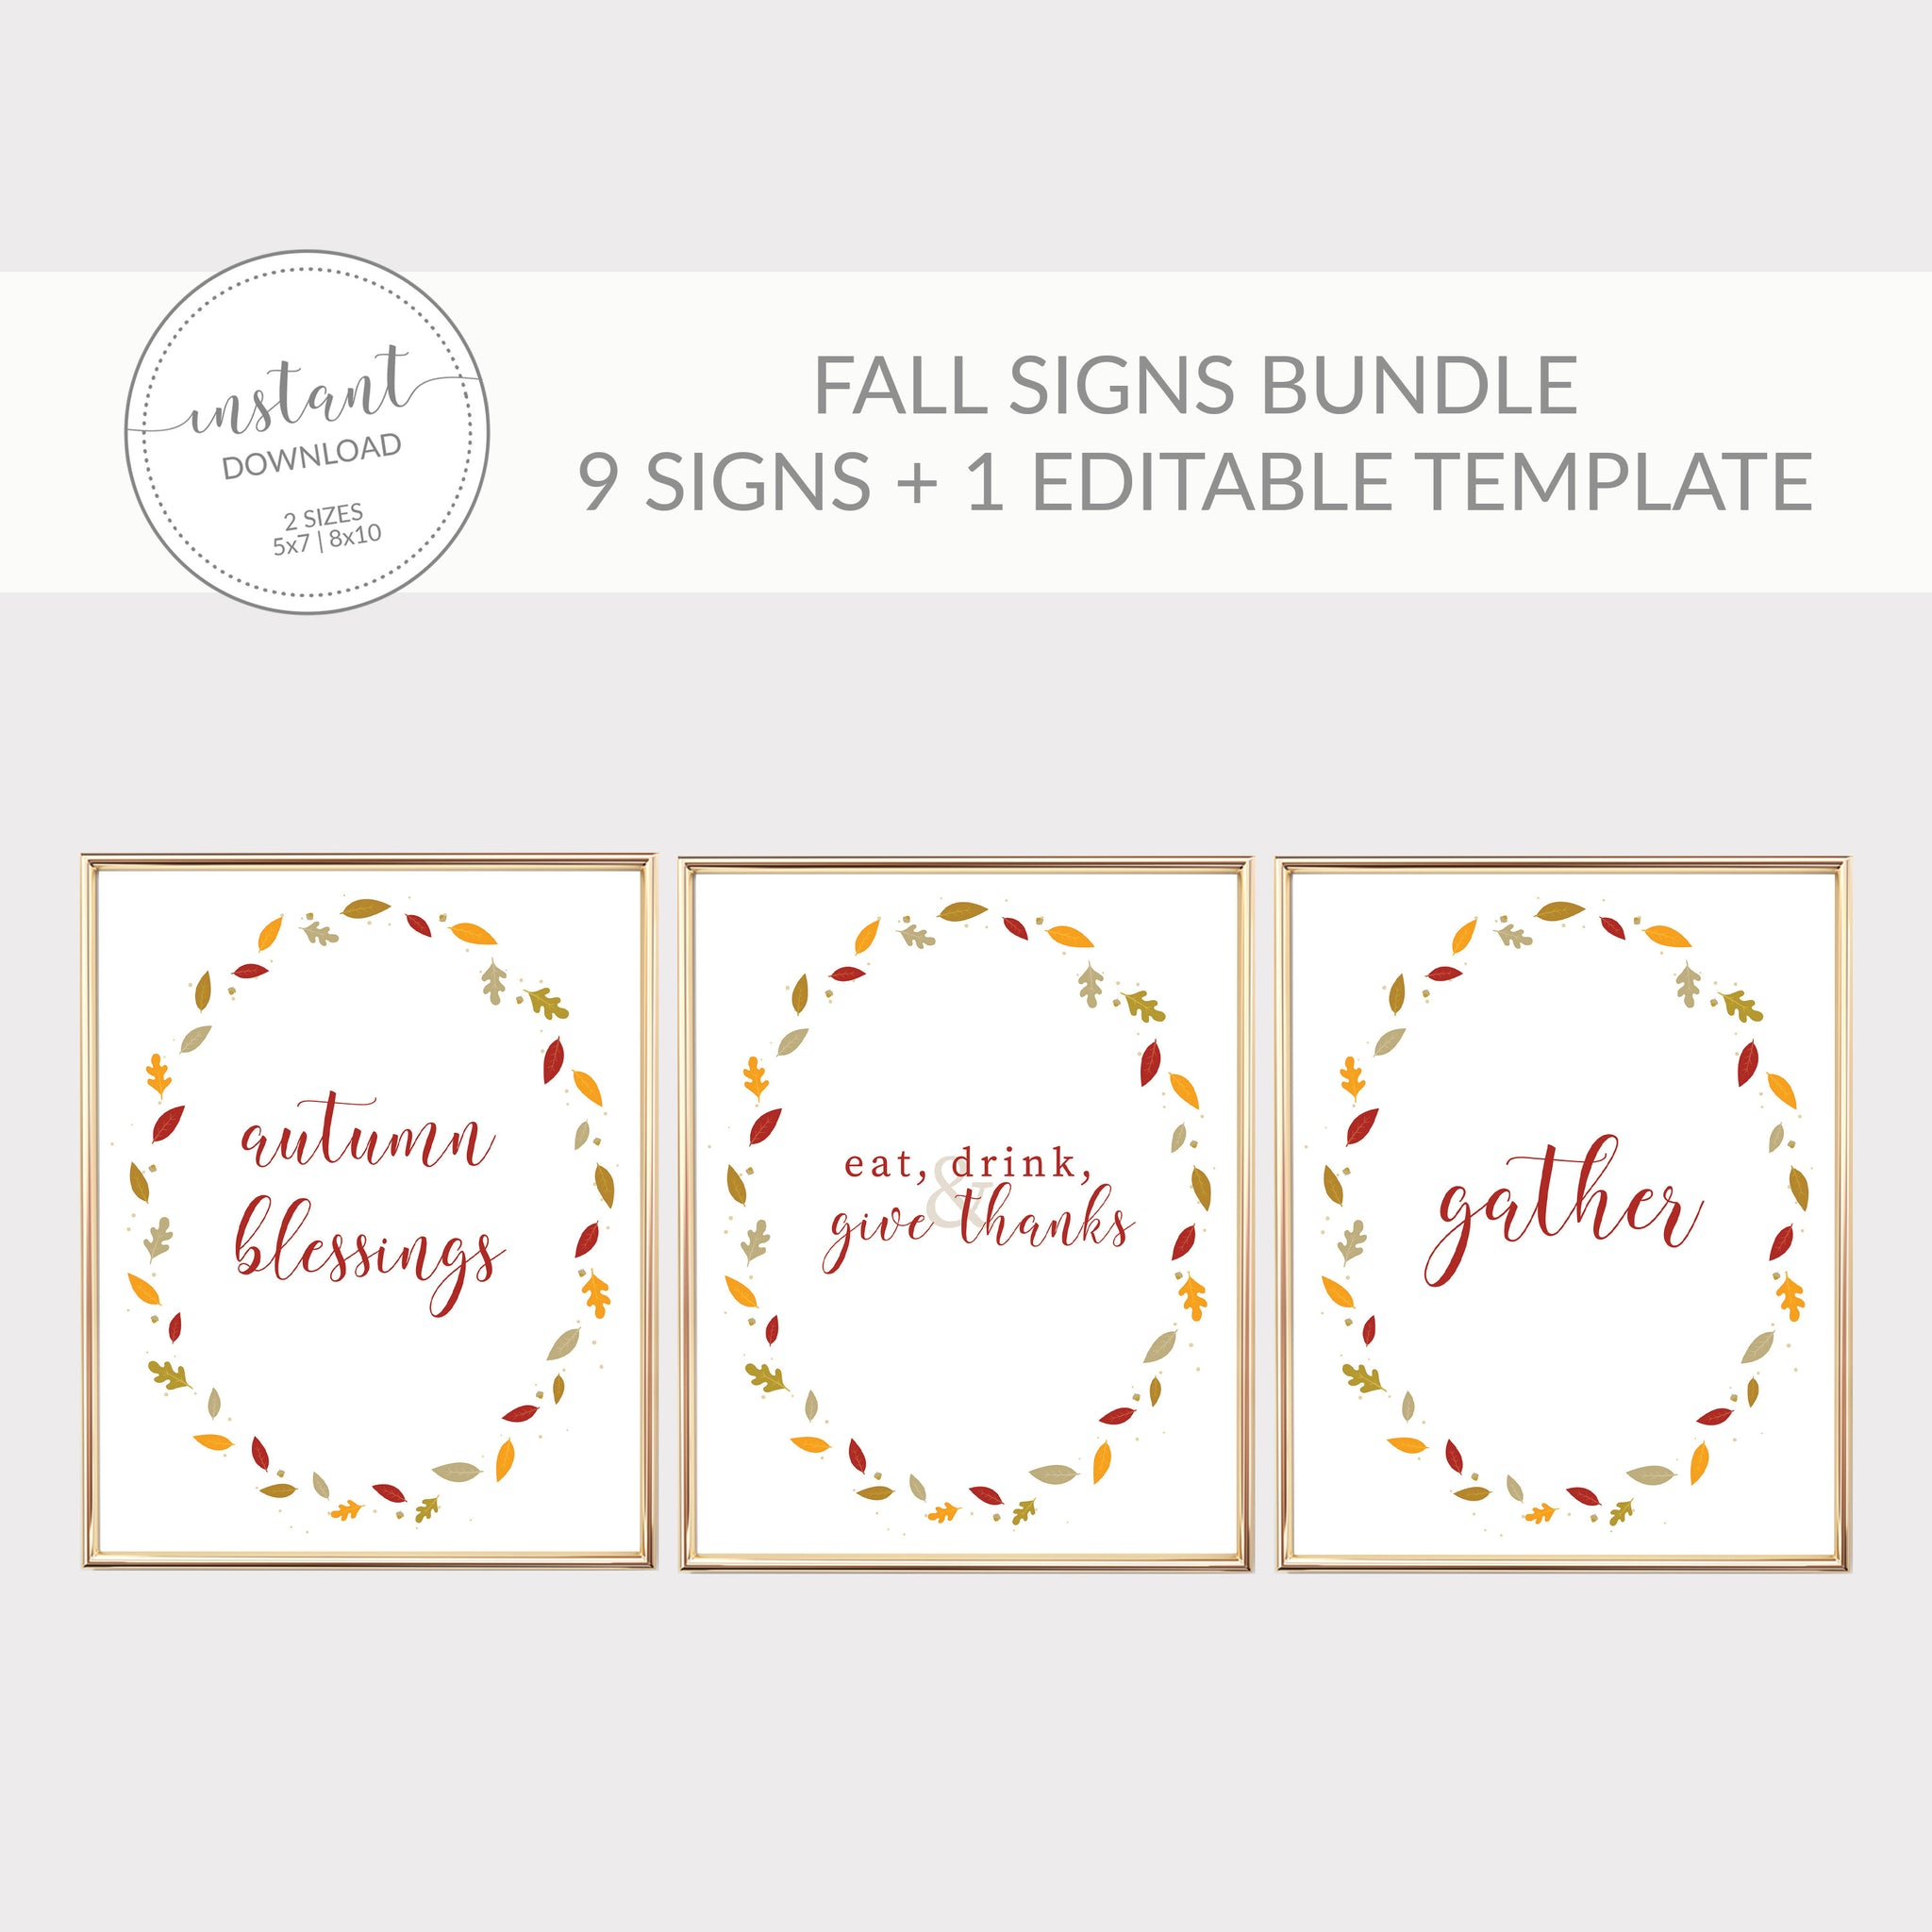 Fall Signs Bundle, Fall Decor Leaves, Thanksgiving Printable Art, Fall Office Decor, Fall Editable Sign, INSTANT DOWNLOAD - FL100